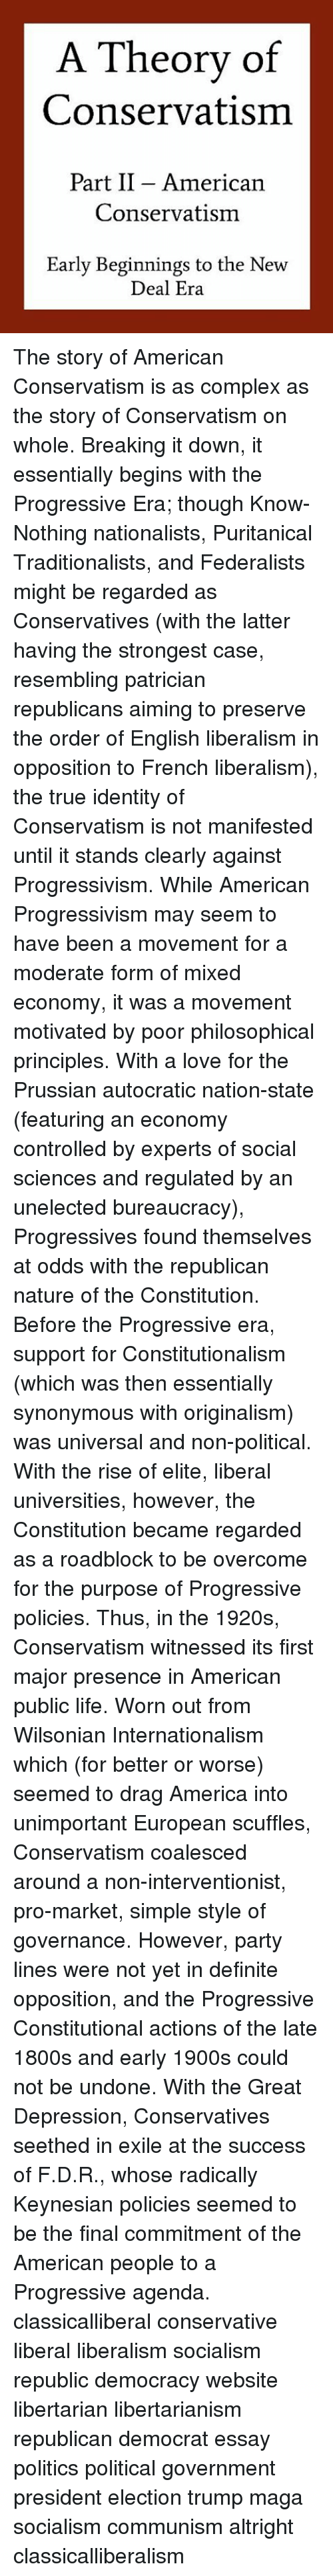 socialist progressivism essay Editorial reviews about the author lawrence w larry reed became  president of the  why nazism was socialism and why socialism is totalitarian   well thought trough collection of essays and articles, challenging various ideas  of the.